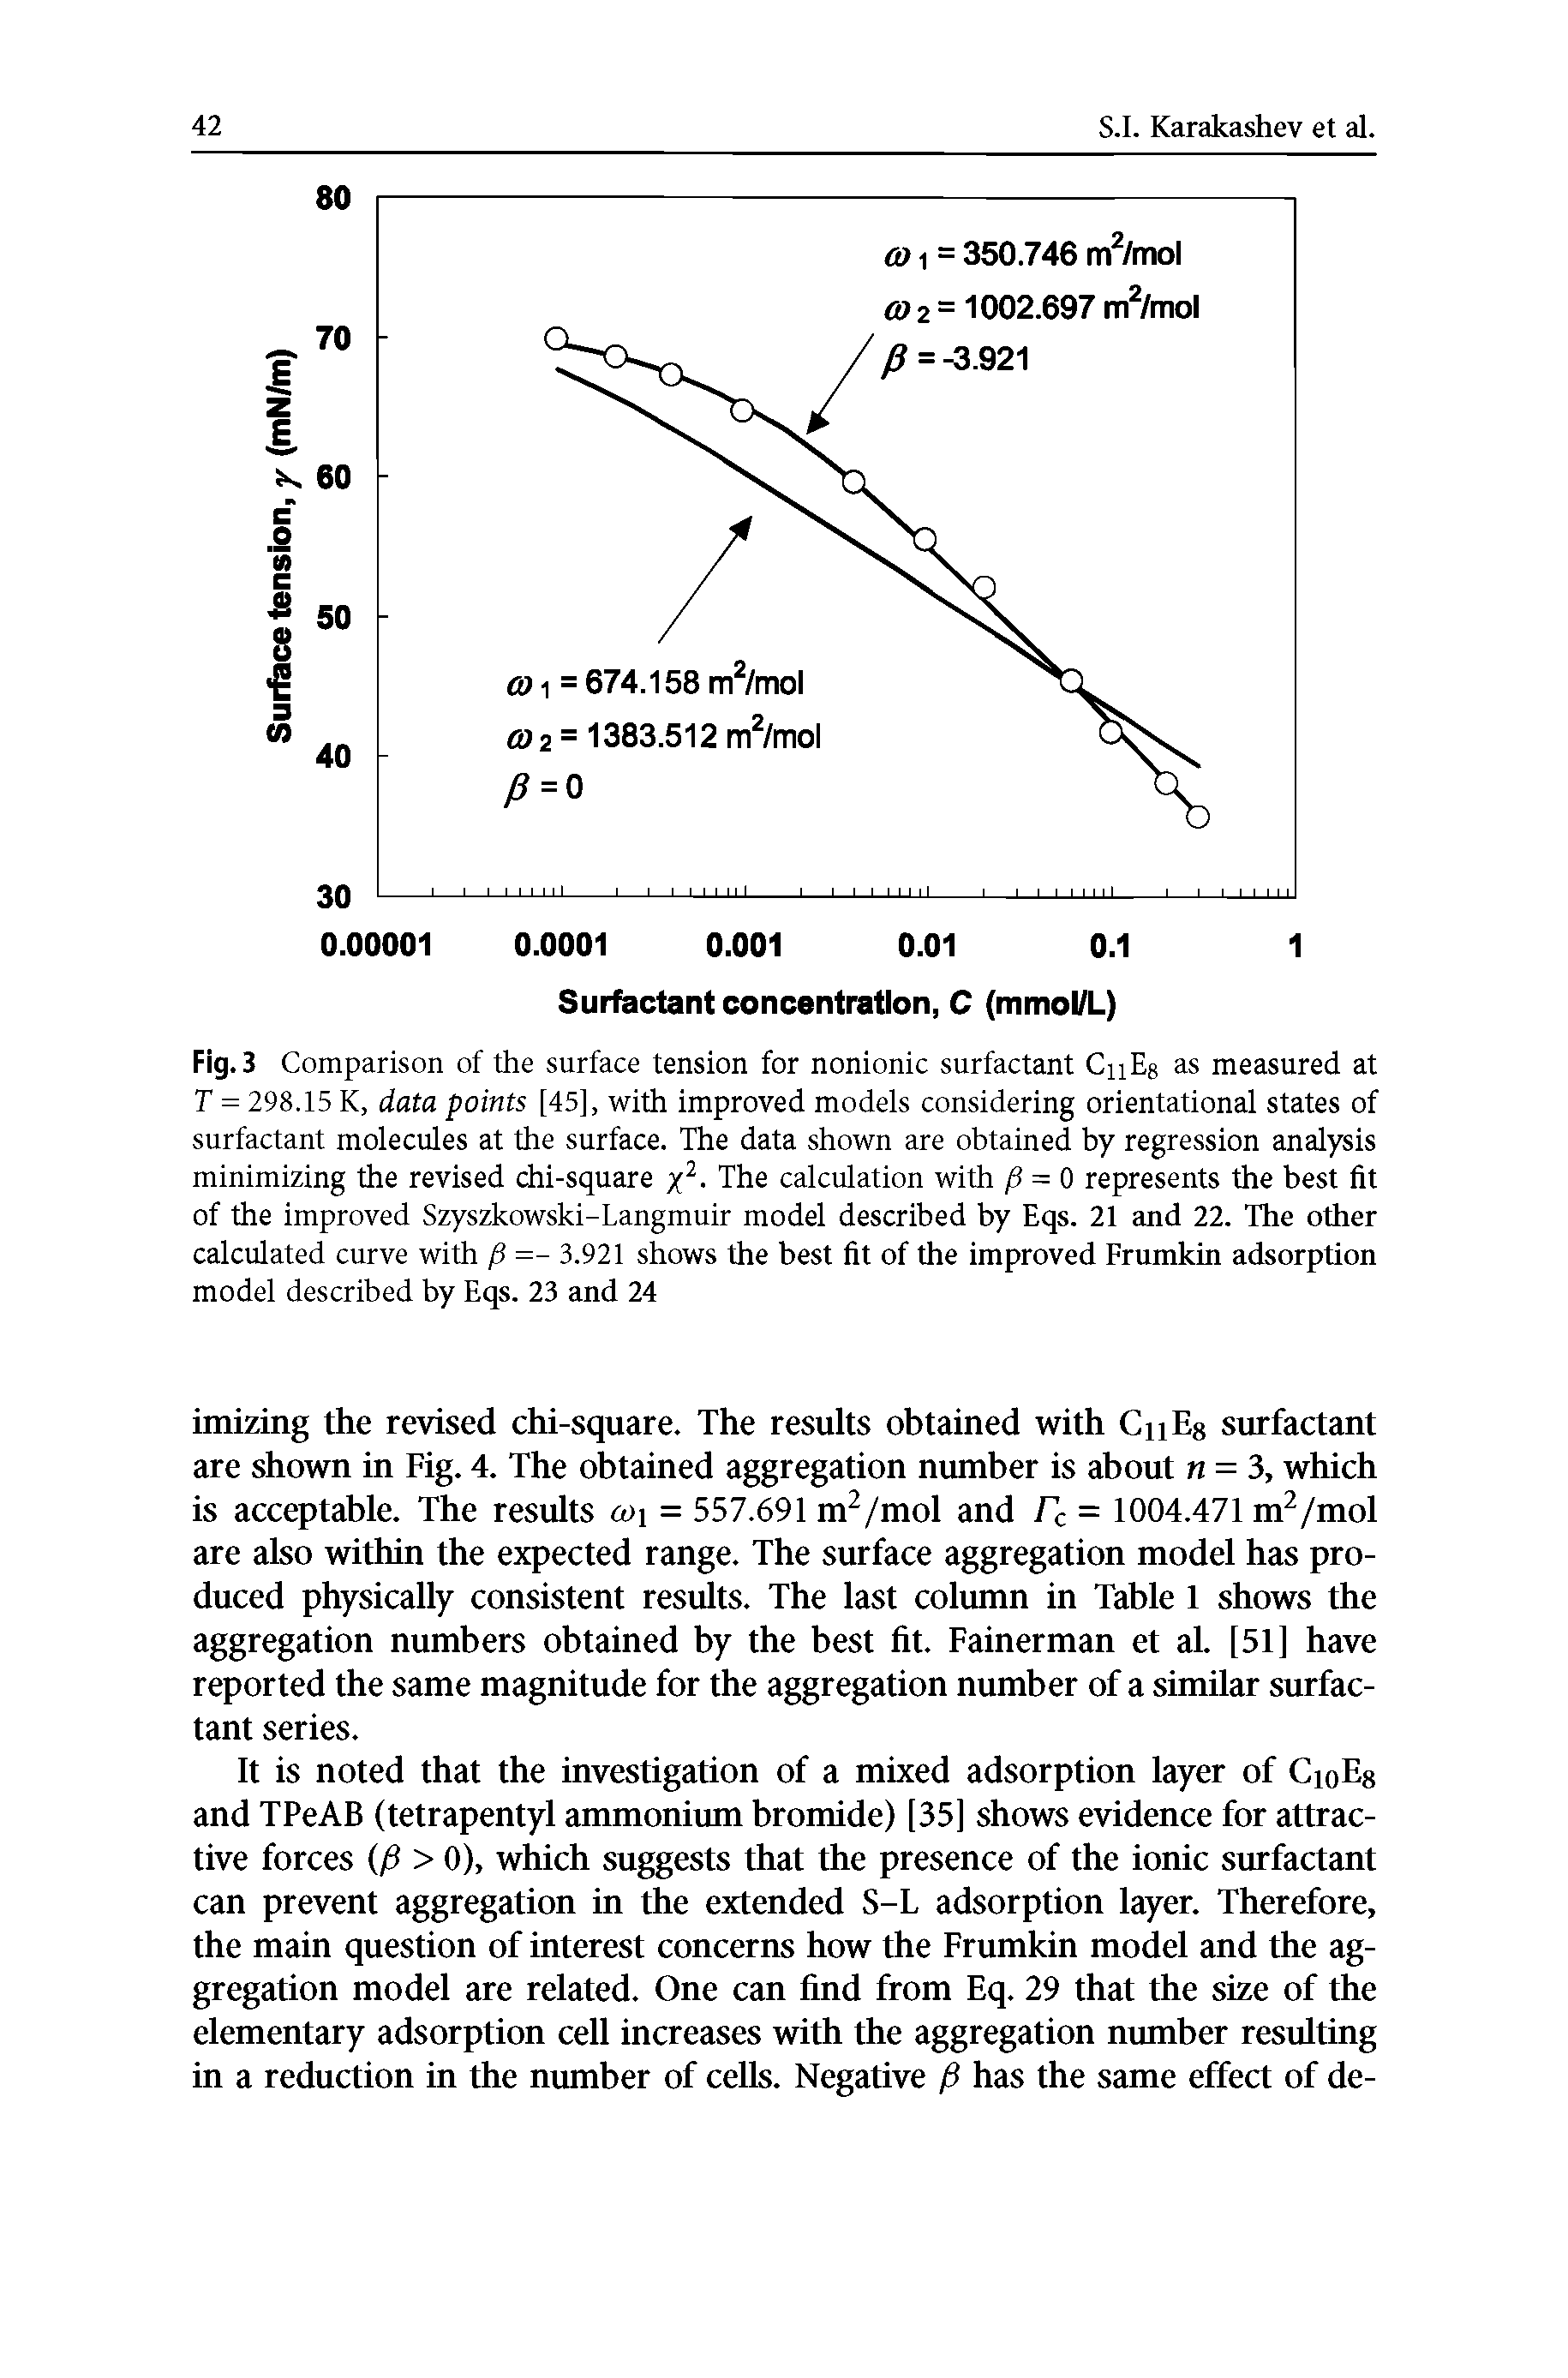 Fig. 3 Comparison of the surface tension for nonionic surfactant CnEg as measured at T = 298.15 K, data points [45], with improved models considering orientational states of surfactant molecules at the surface. The data shown are obtained by regression analysis minimizing the revised chi-square The calculation with fi = 0 represents the best fit of the improved Szyszkowski-Langmuir model described by Eqs. 21 and 22. The other calculated curve with =- 3.921 shows the best fit of the improved Frumkin adsorption model described by Eqs. 23 and 24...